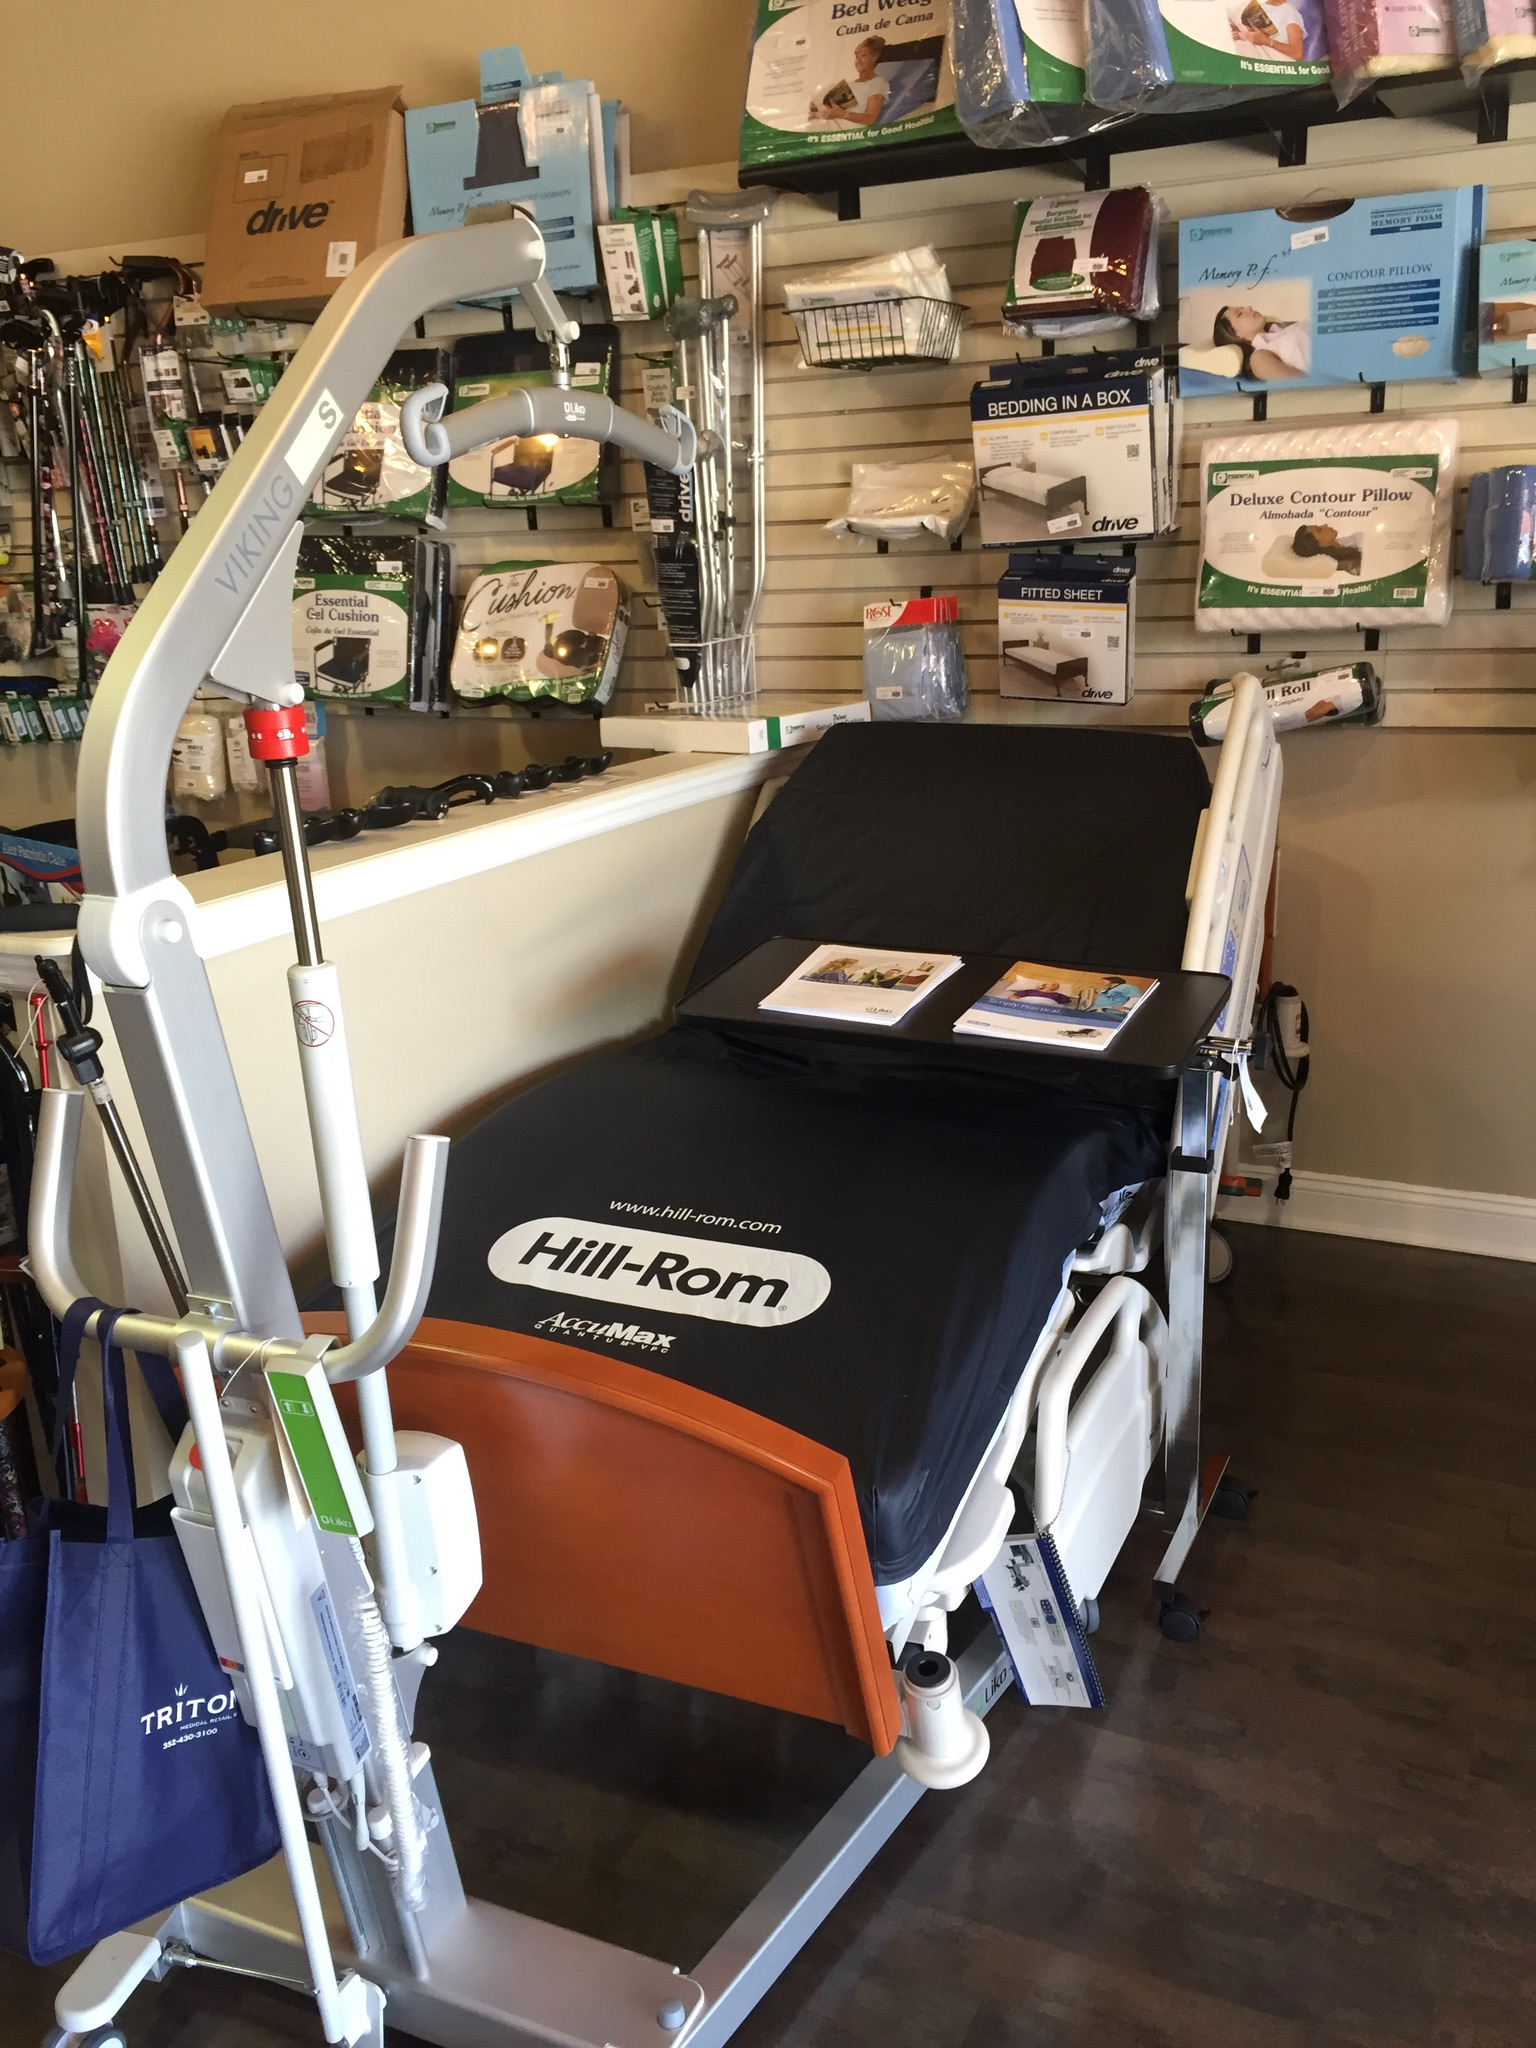 Hospital Beds and Lifts for Comfort and Security at Home - Lady Lake, The Villages